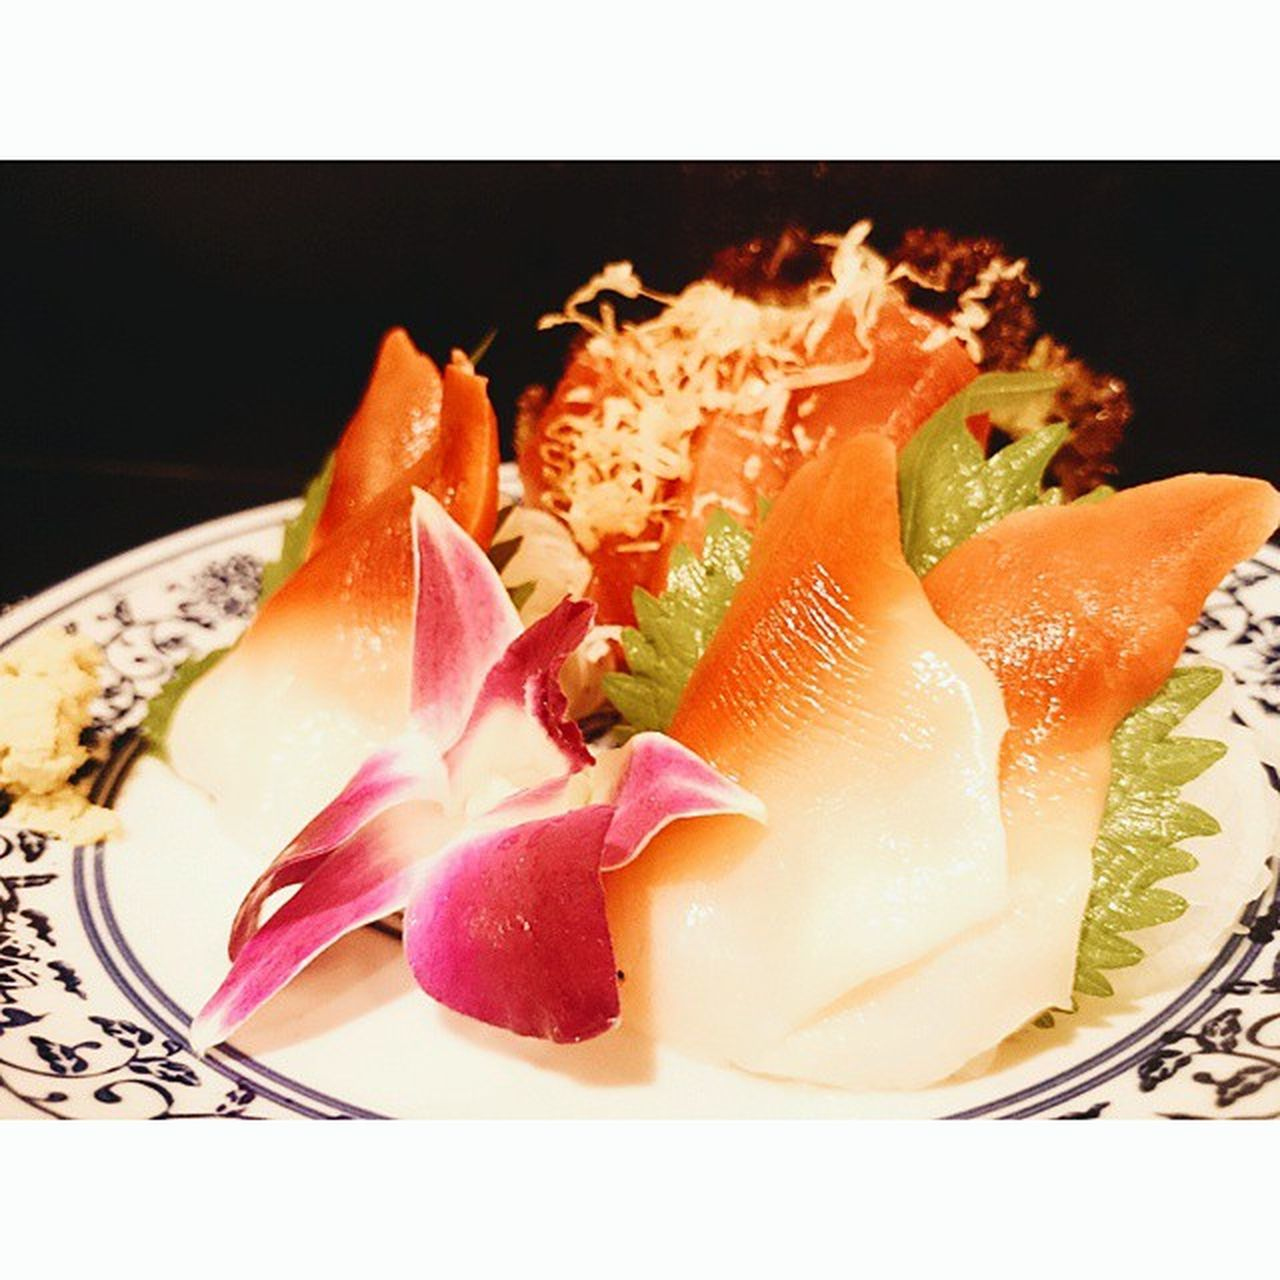 food and drink, food, plate, healthy eating, freshness, slice, indoors, no people, close-up, seafood, studio shot, sushi, black background, fruit, ready-to-eat, sashimi, day